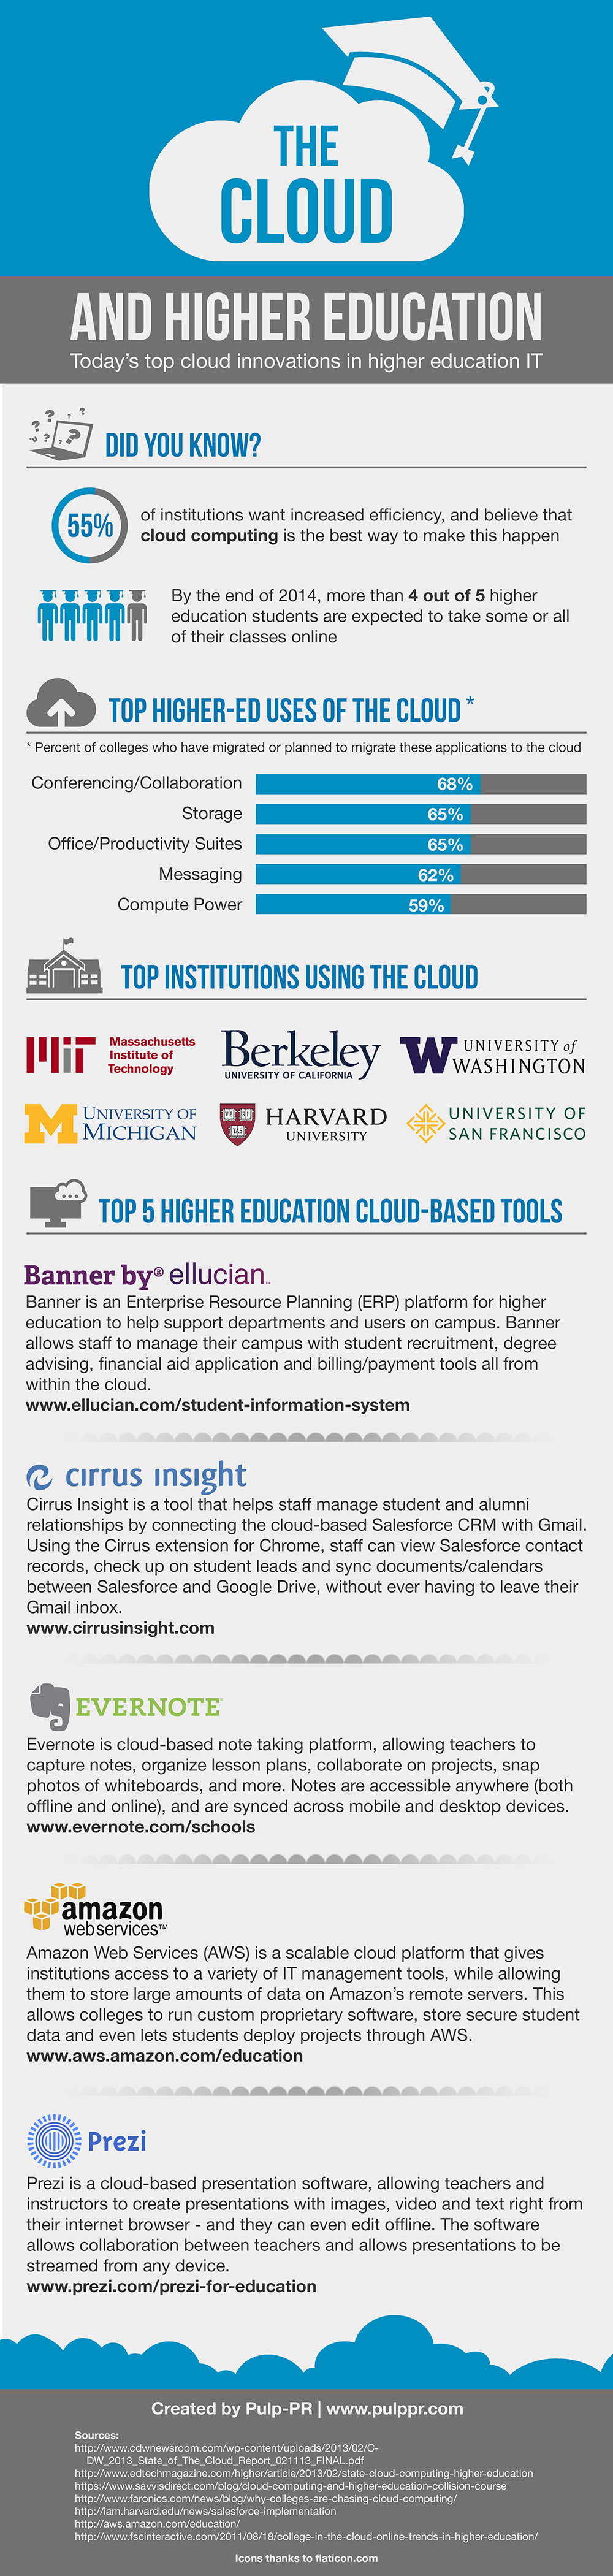 Cloud-Higher-Education-Infographic-v2_m